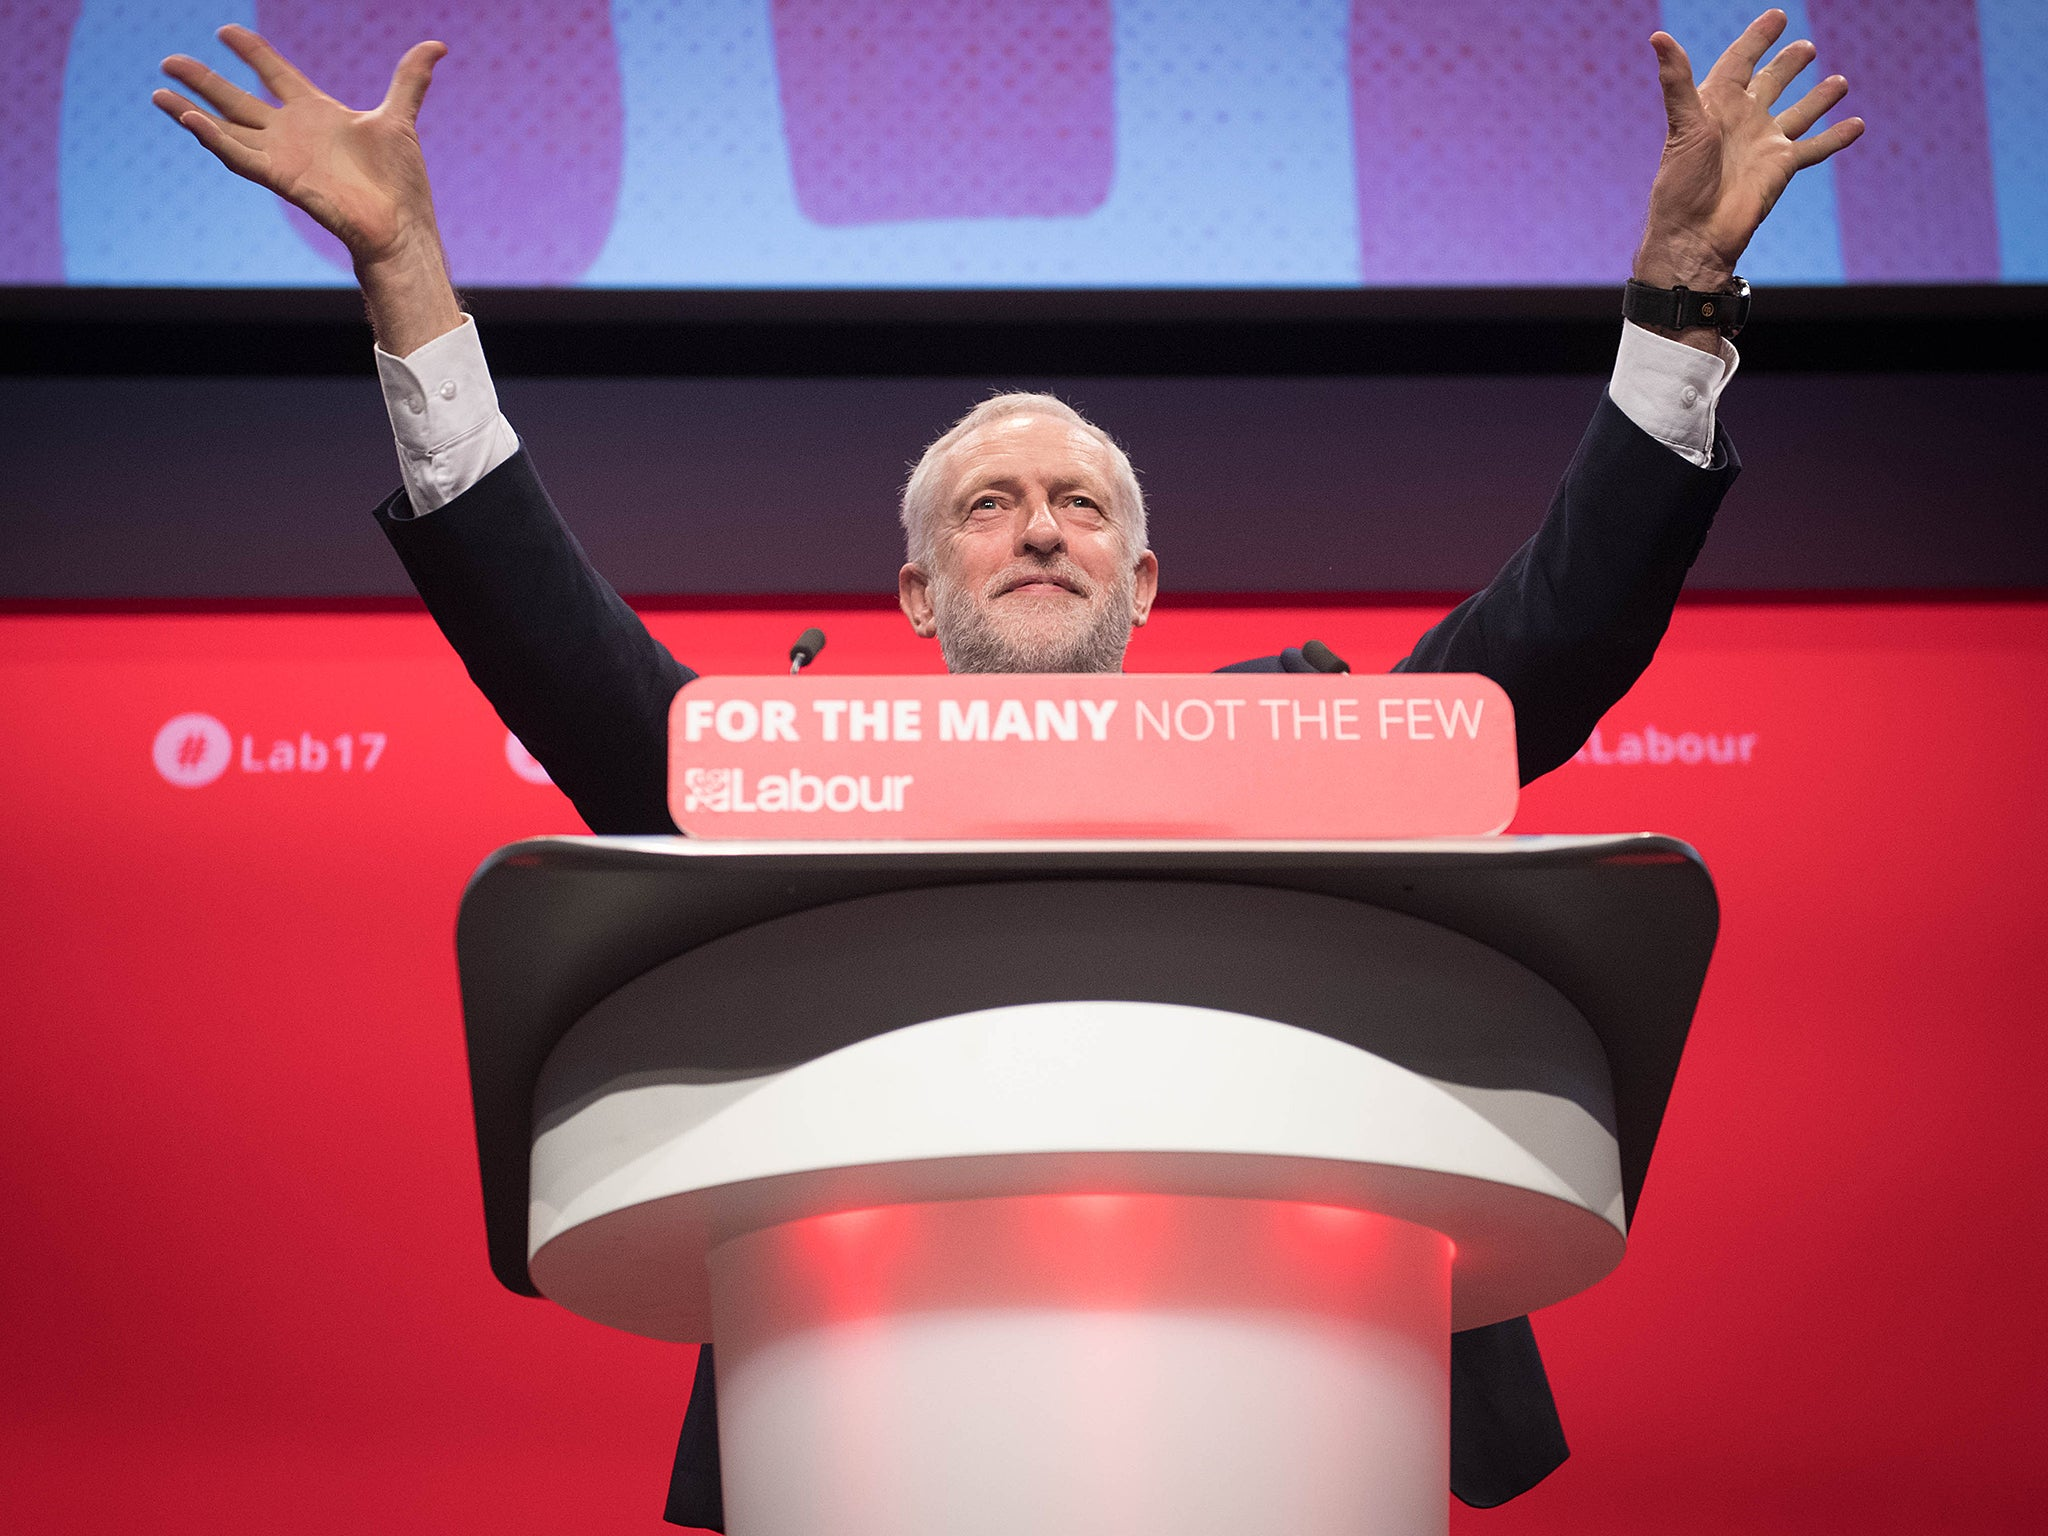 Landlords are right about Corbyn's crazy proposals to